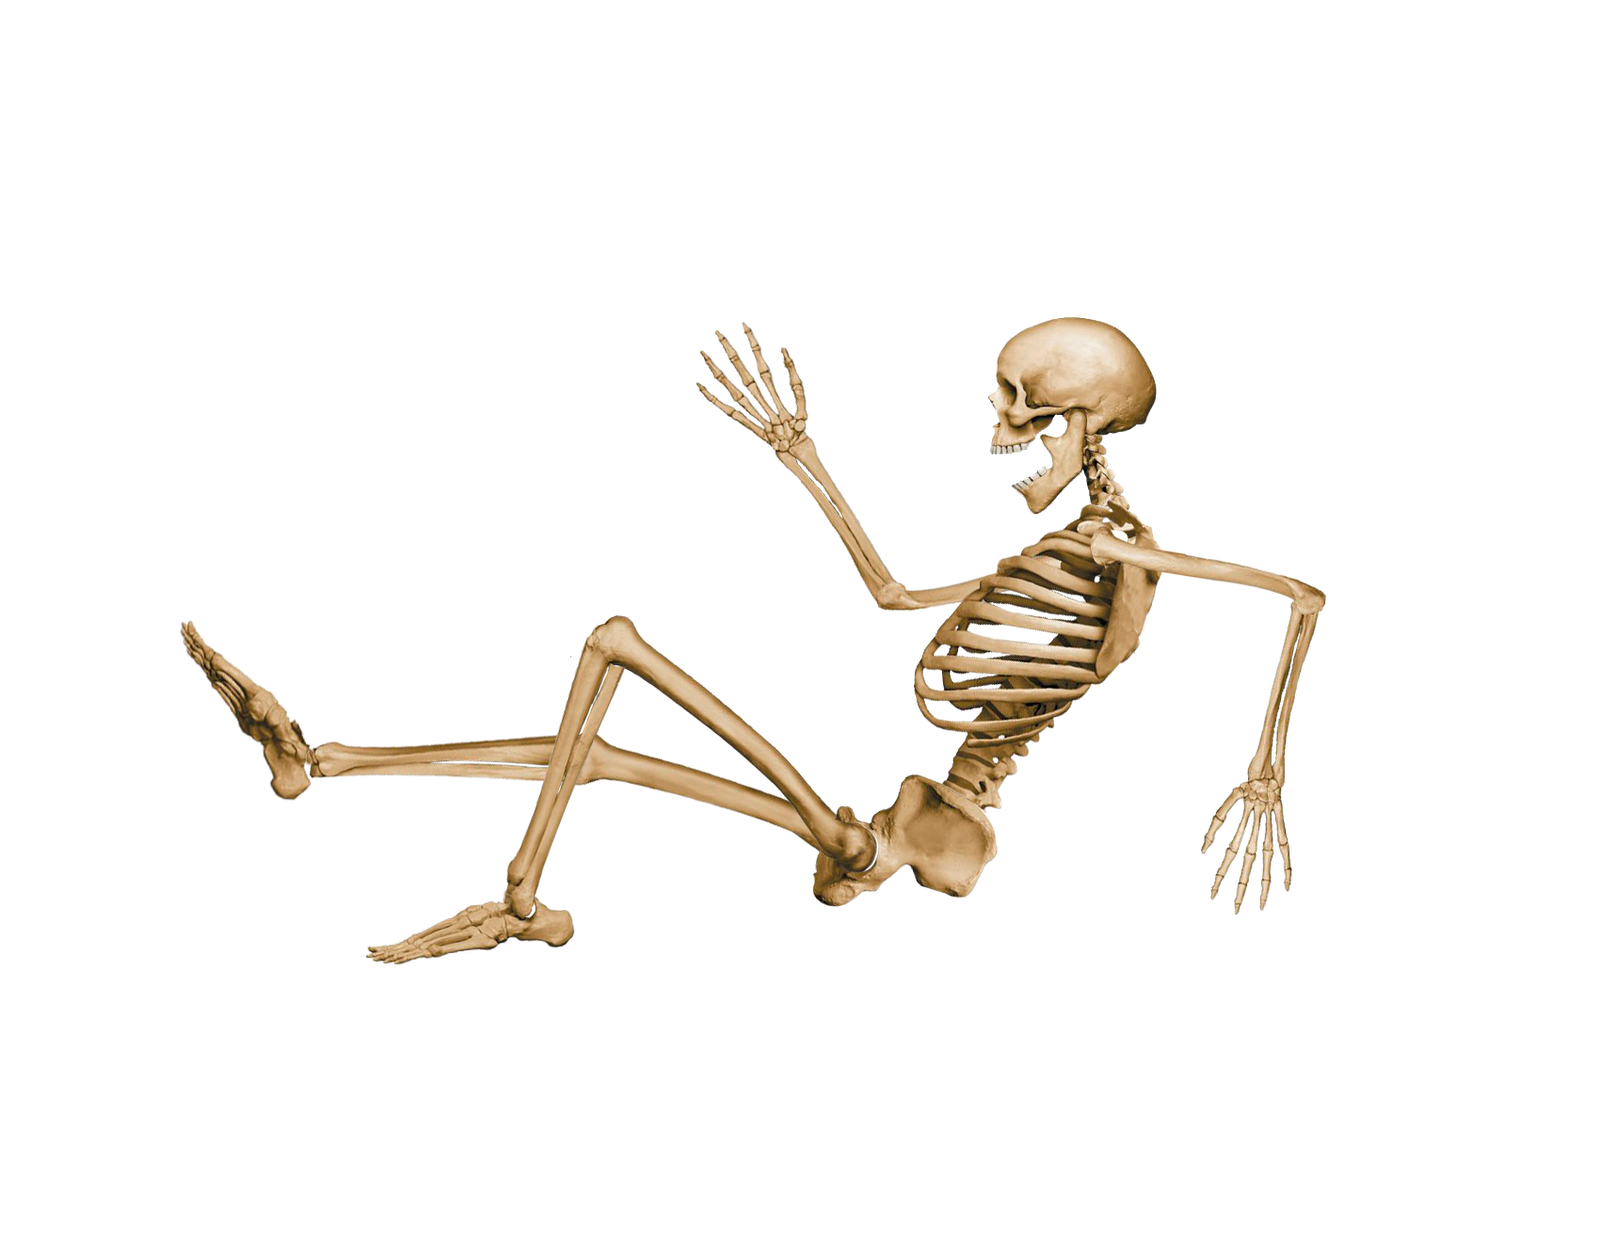 Skeleton bone png. Skulls images free download